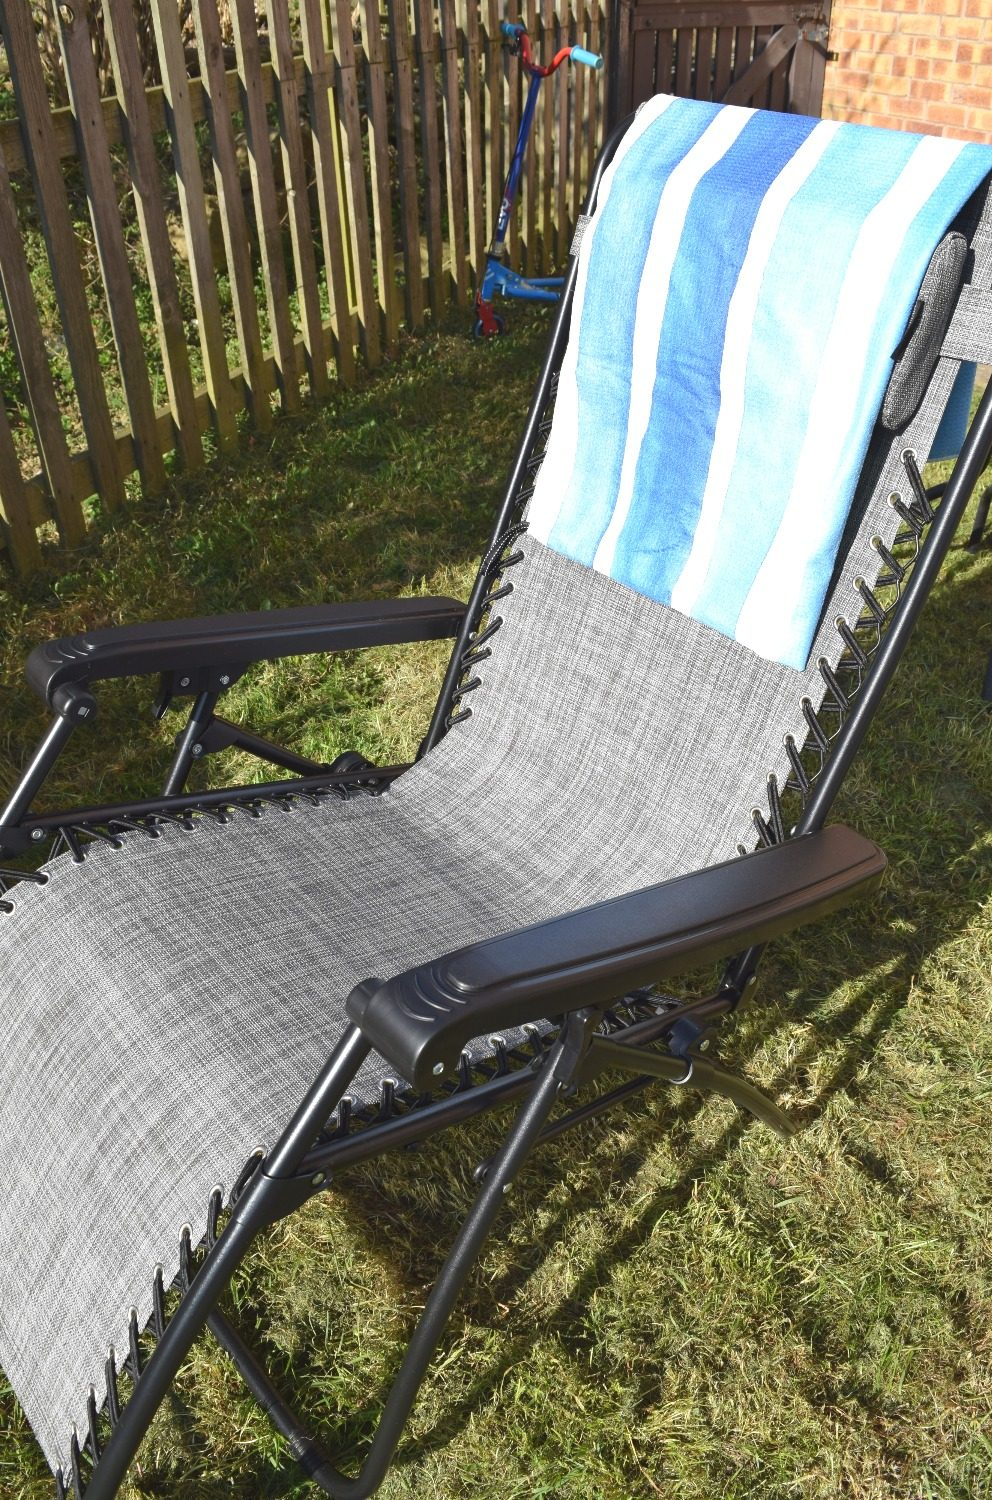 getting ready for summer with my zero gravity chair and beach towel